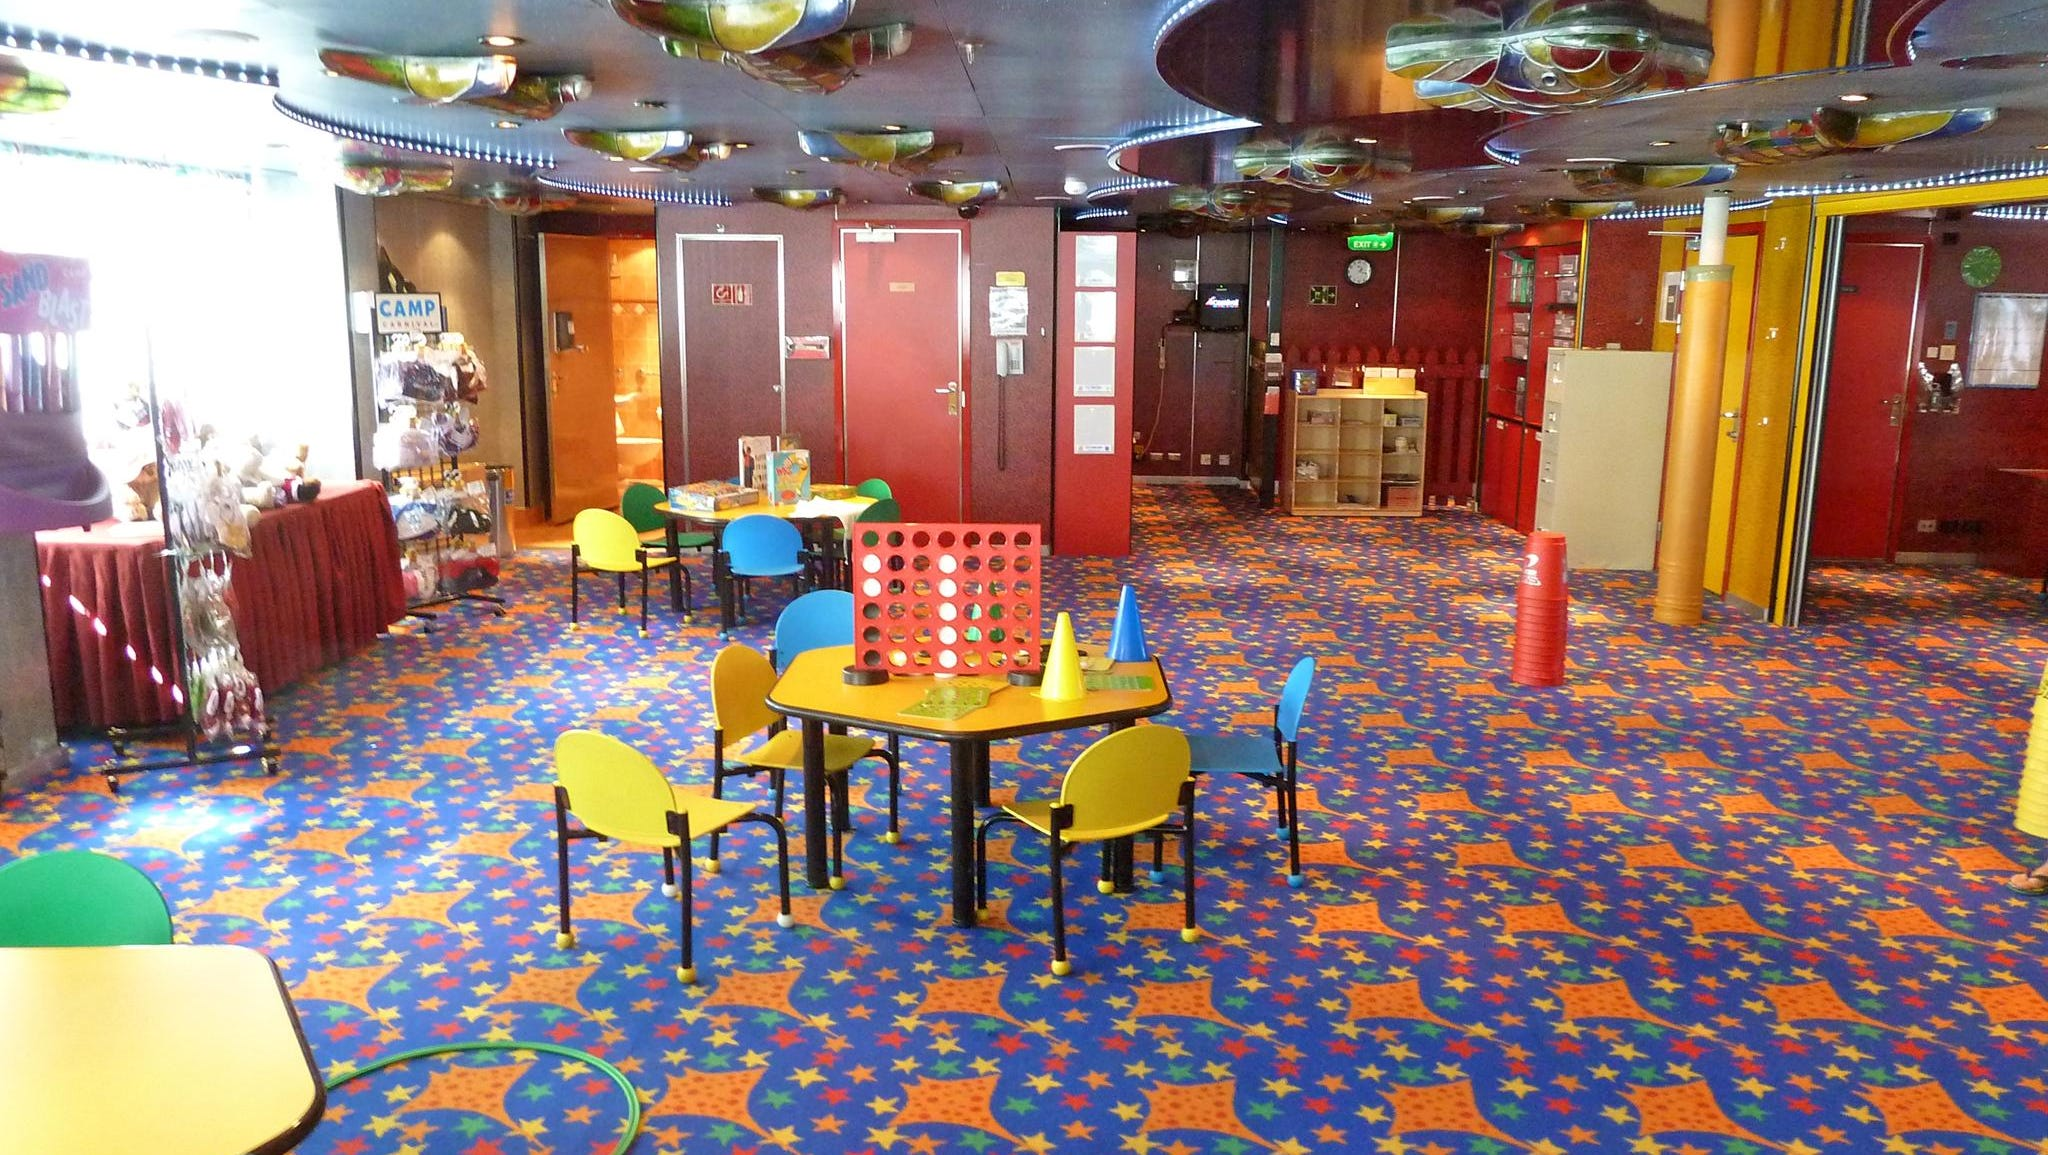 Located on forward Deck 12, Camp Carnival a play area with age-specific activities for kids aged 2-5, 6-8 and 9-11.